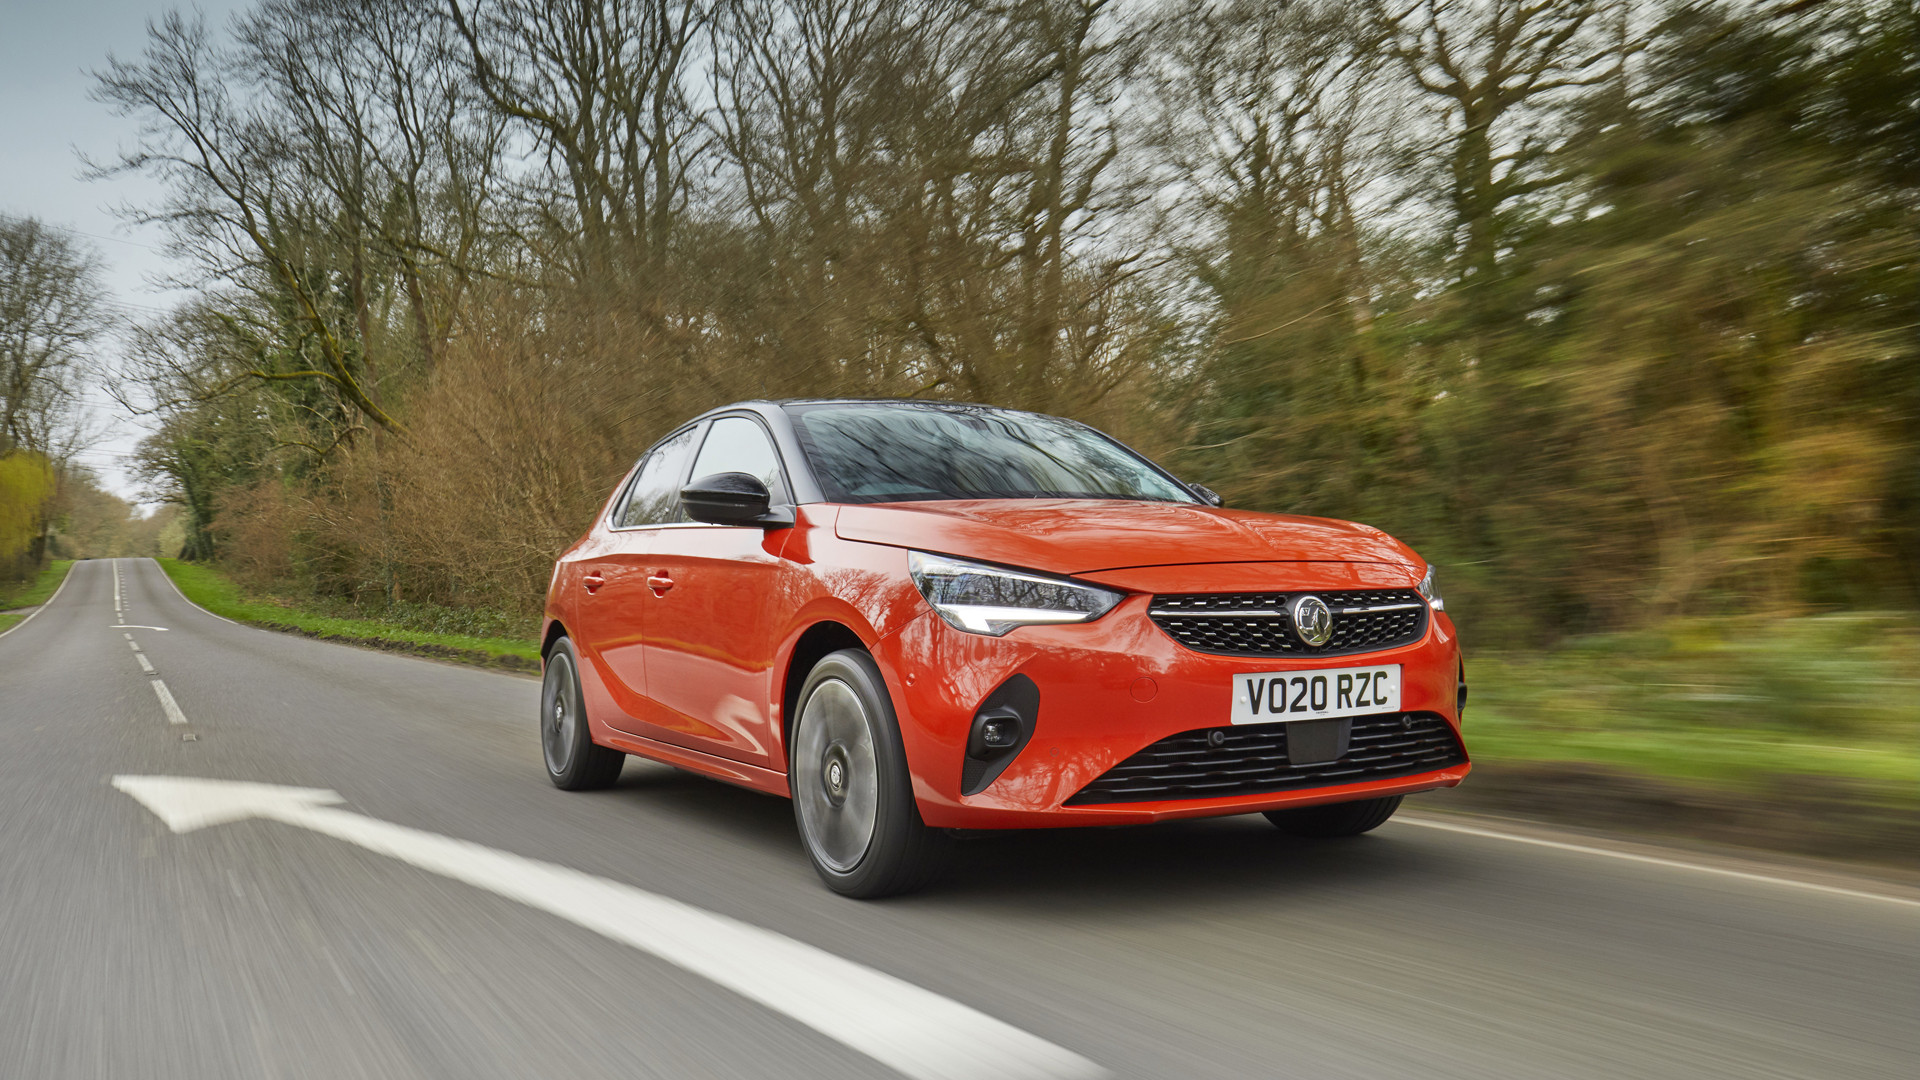 Vauxhall confirms fully-electric models continue to remain eligible for Government Plug-in Car Grant